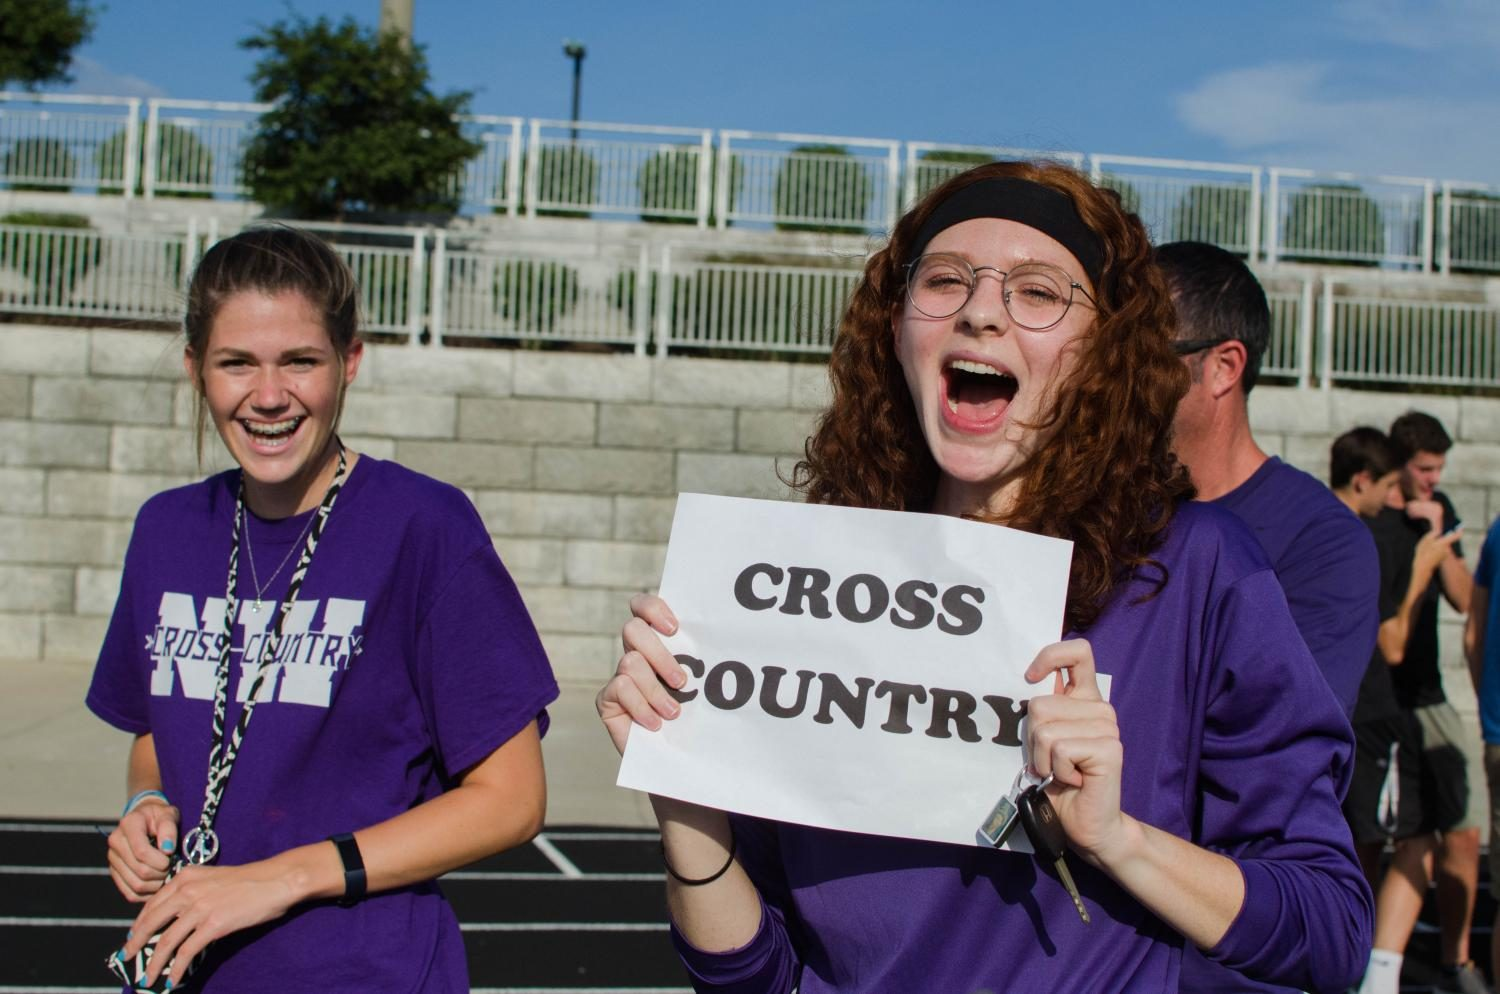 Cross country runners Katie Henry and ________ at Husky Night.